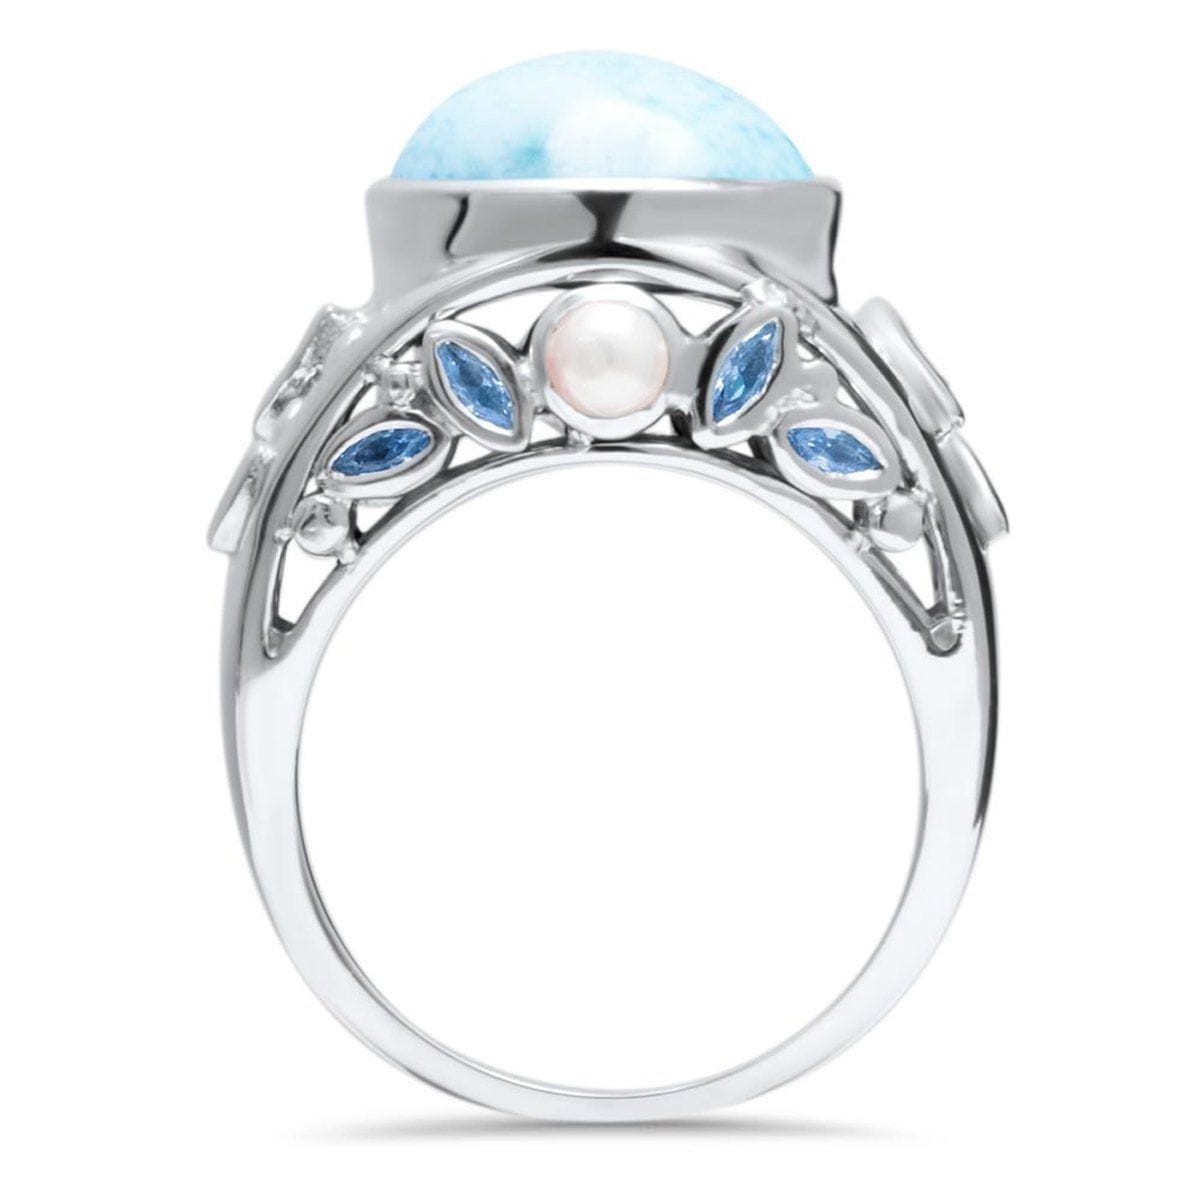 Victoria Blue Spinel & Pearl Ring - Rvict00-00-Marahlago Larimar-Renee Taylor Gallery